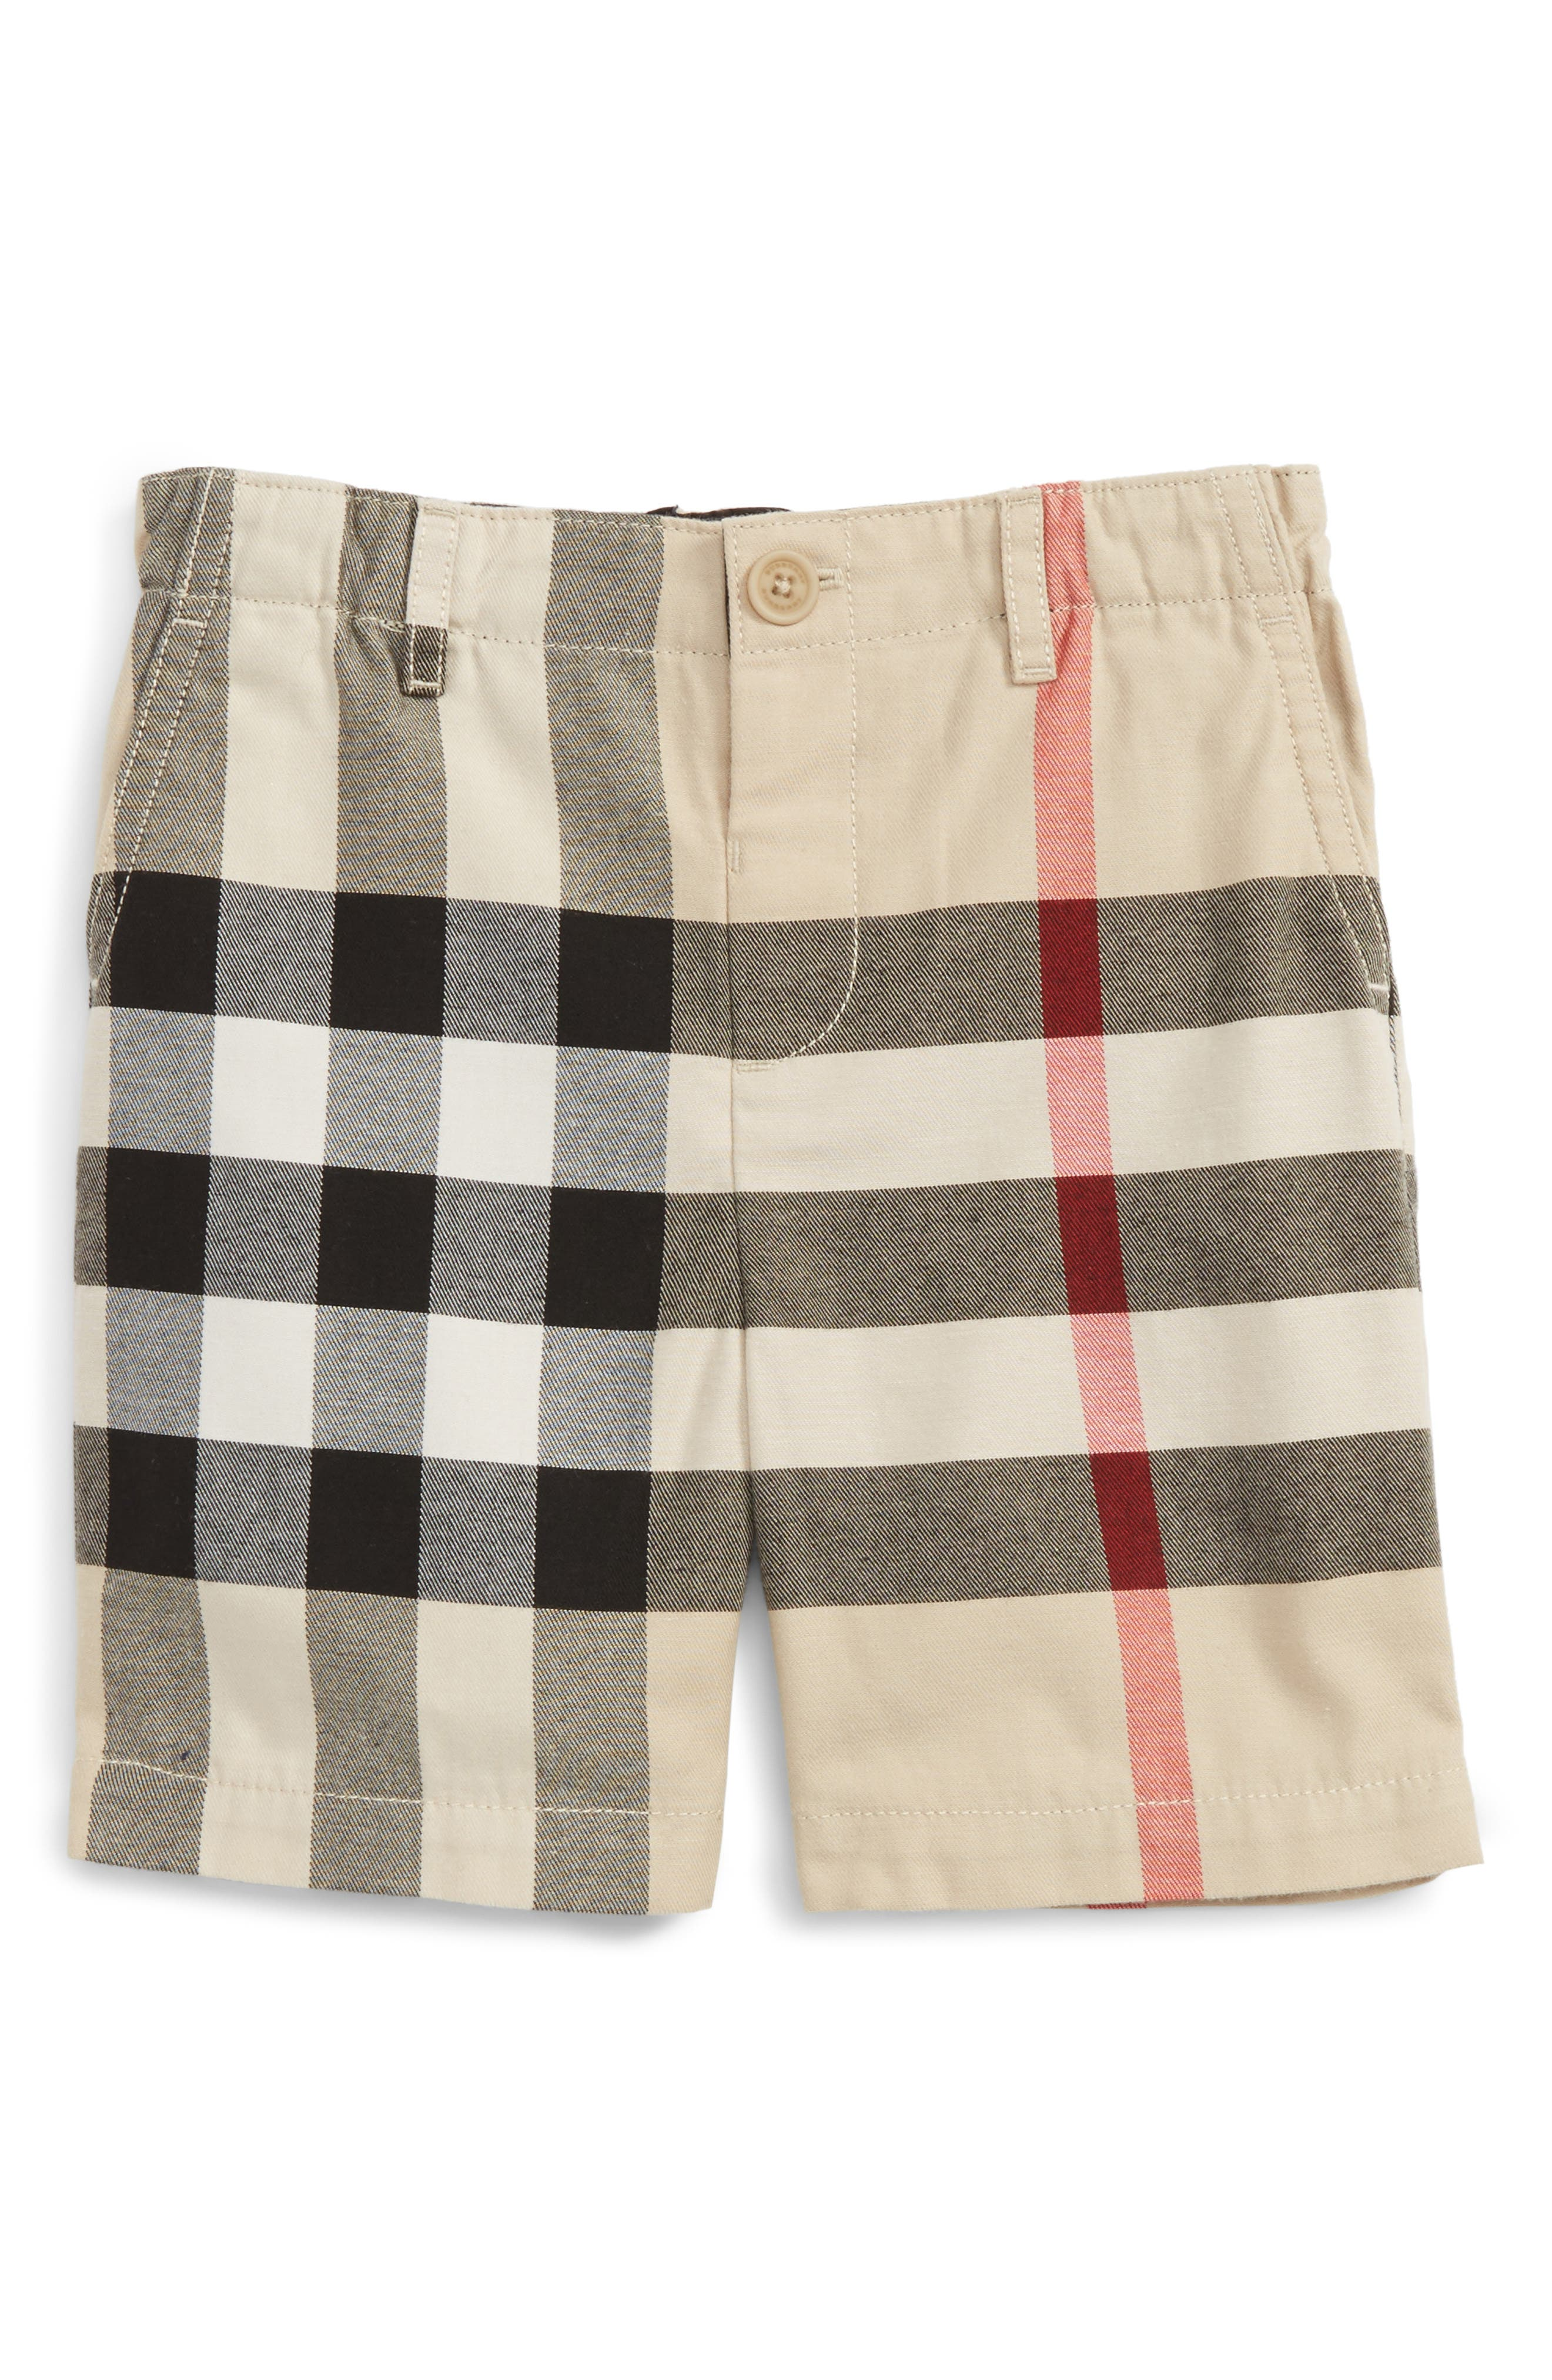 Burberry Sean Check Print Shorts (Baby Boys)